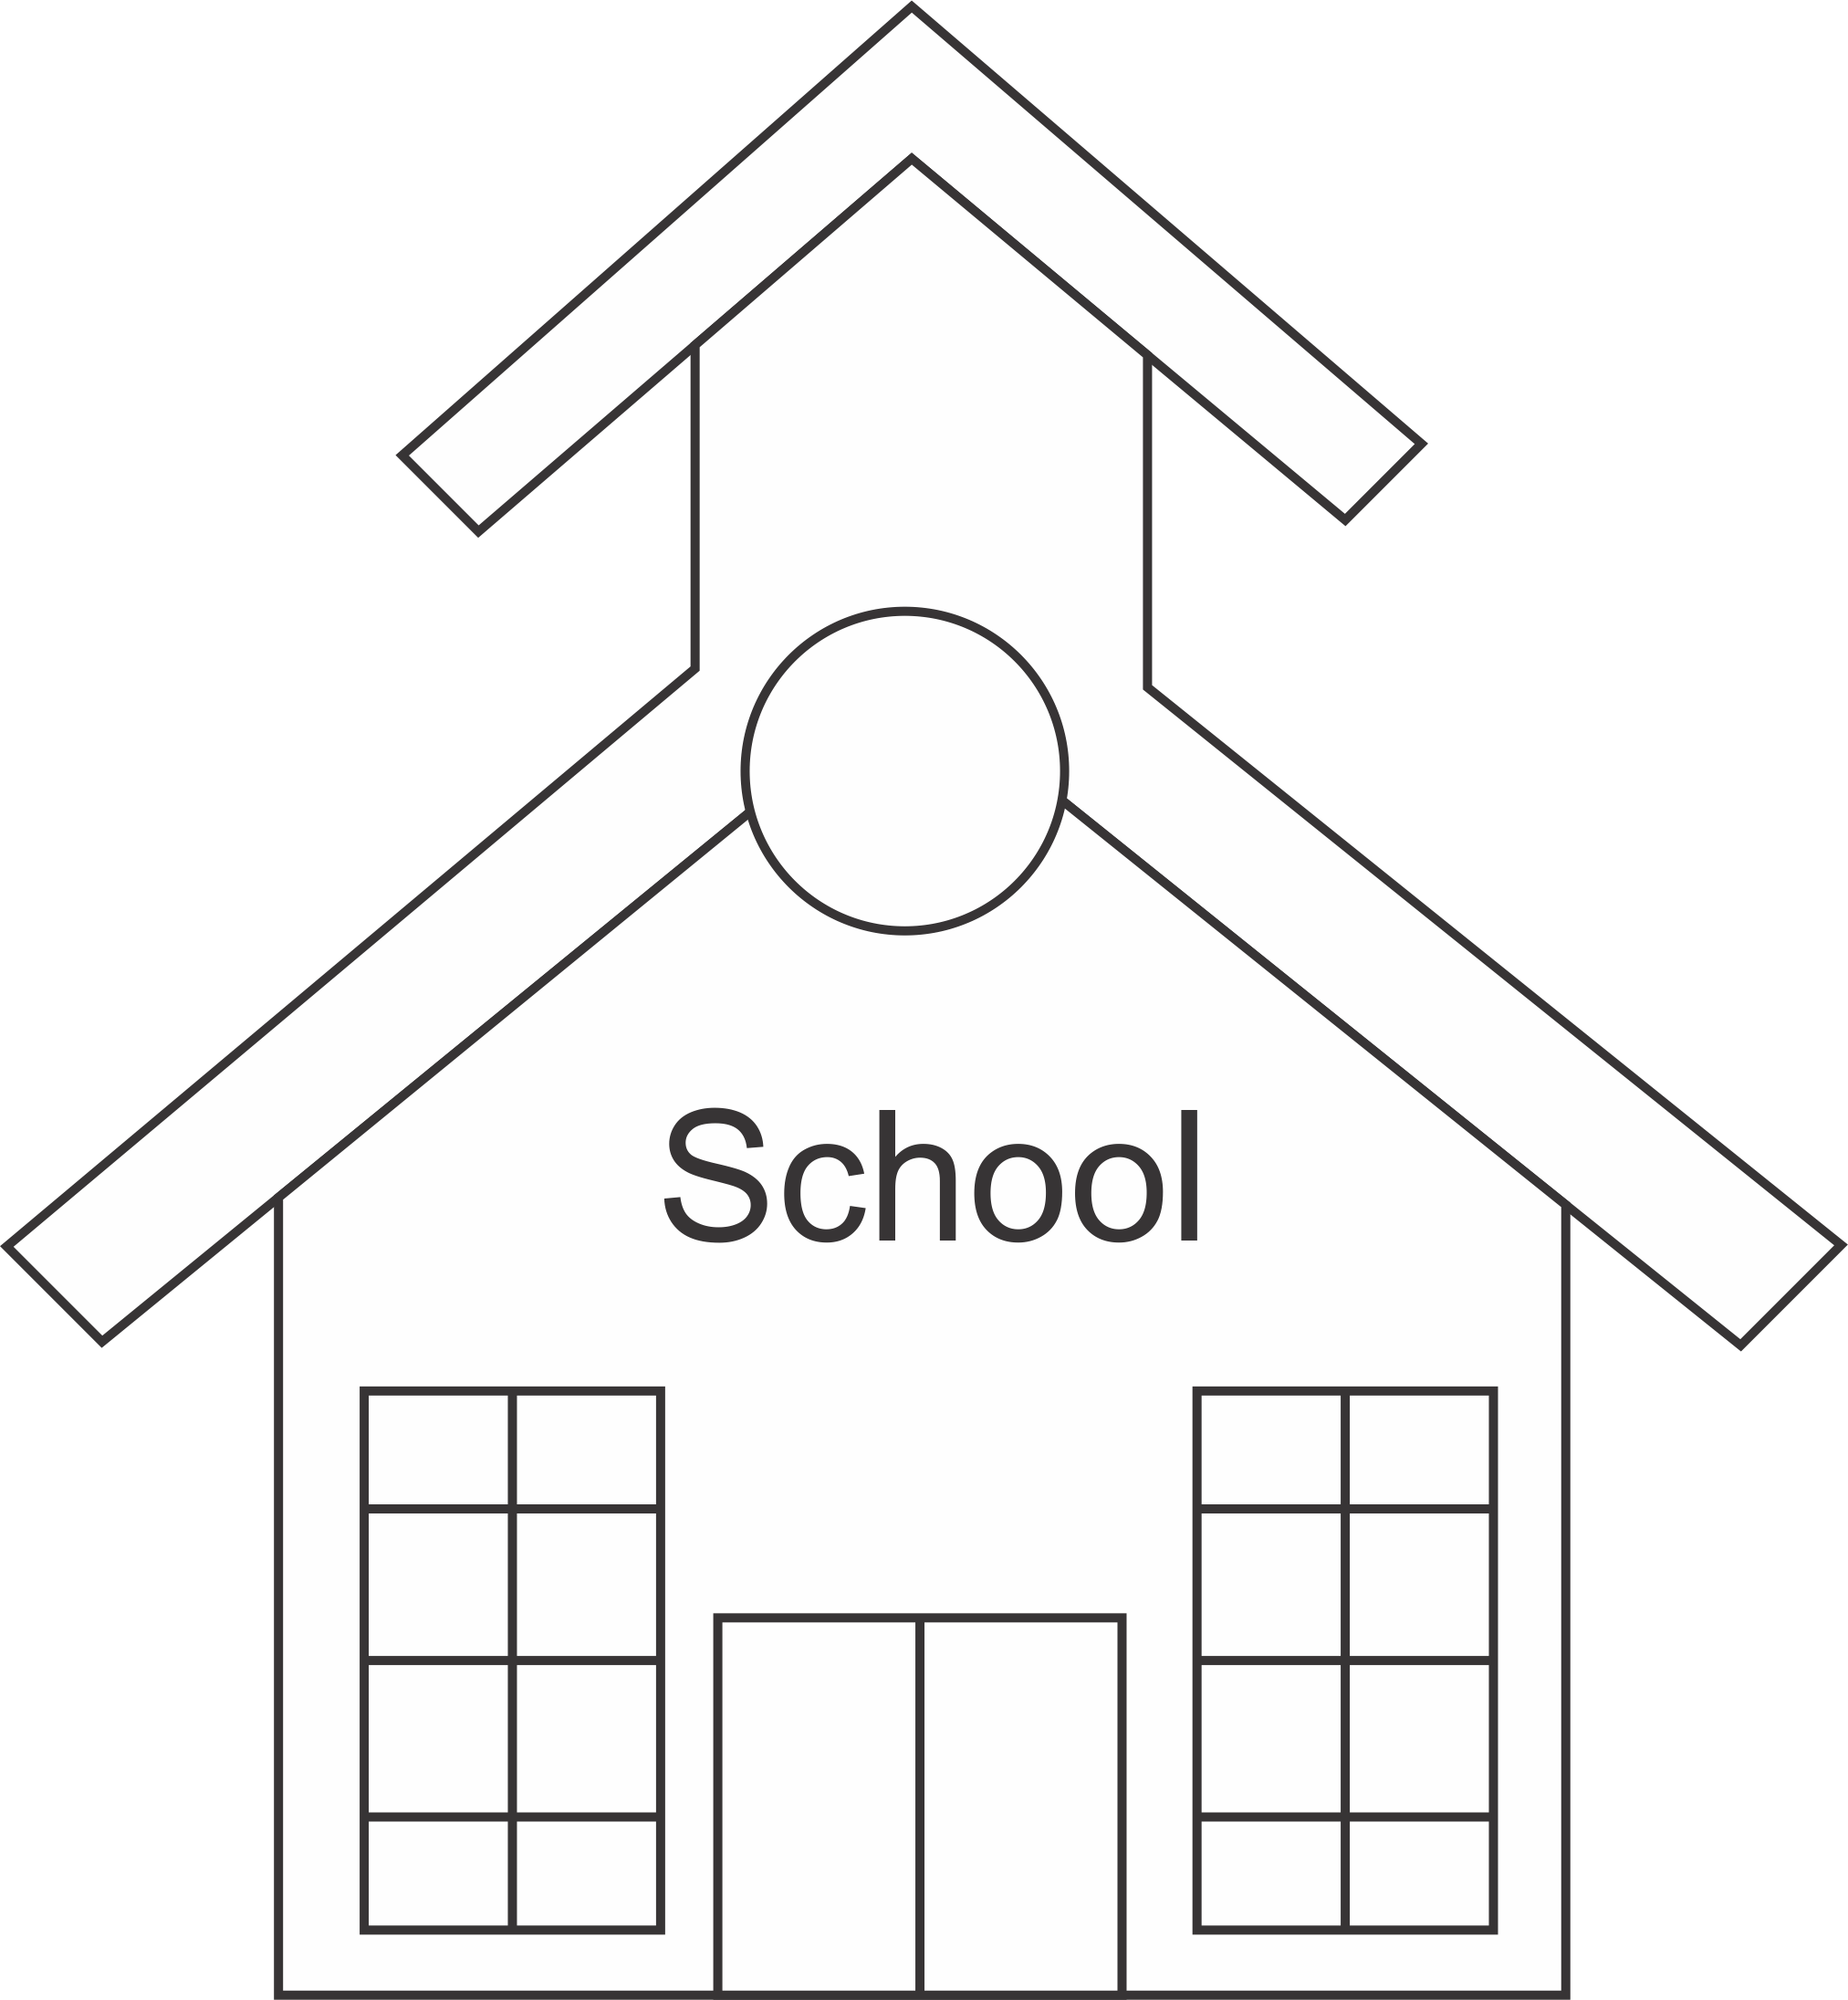 School House Md Free Images At Clker